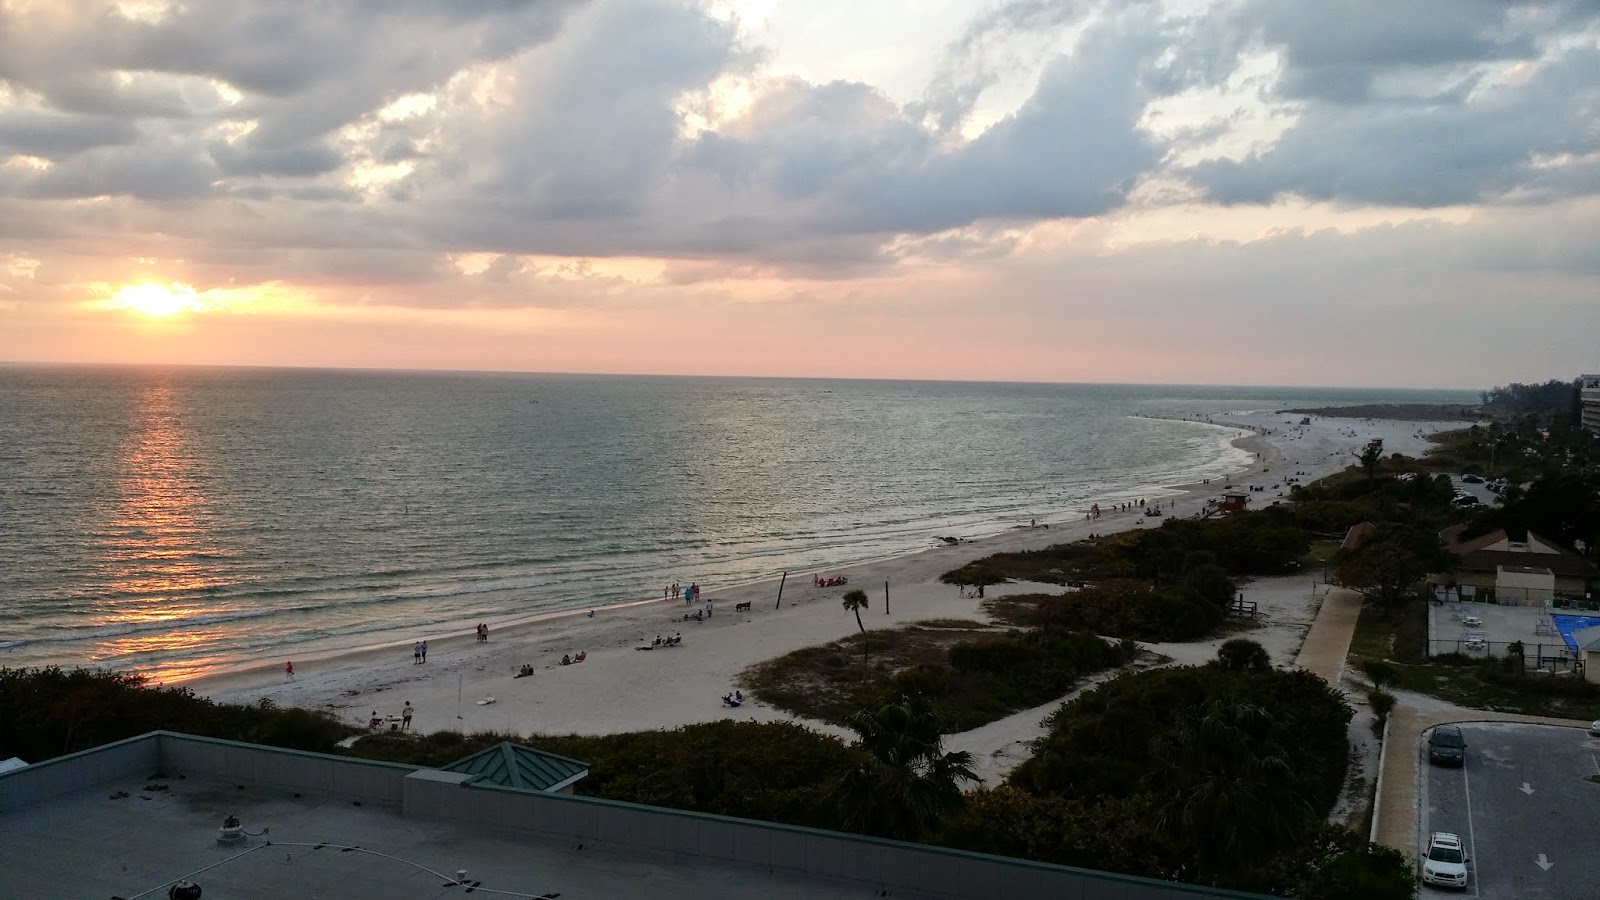 White Sand Beaches in Sarasota, Florida